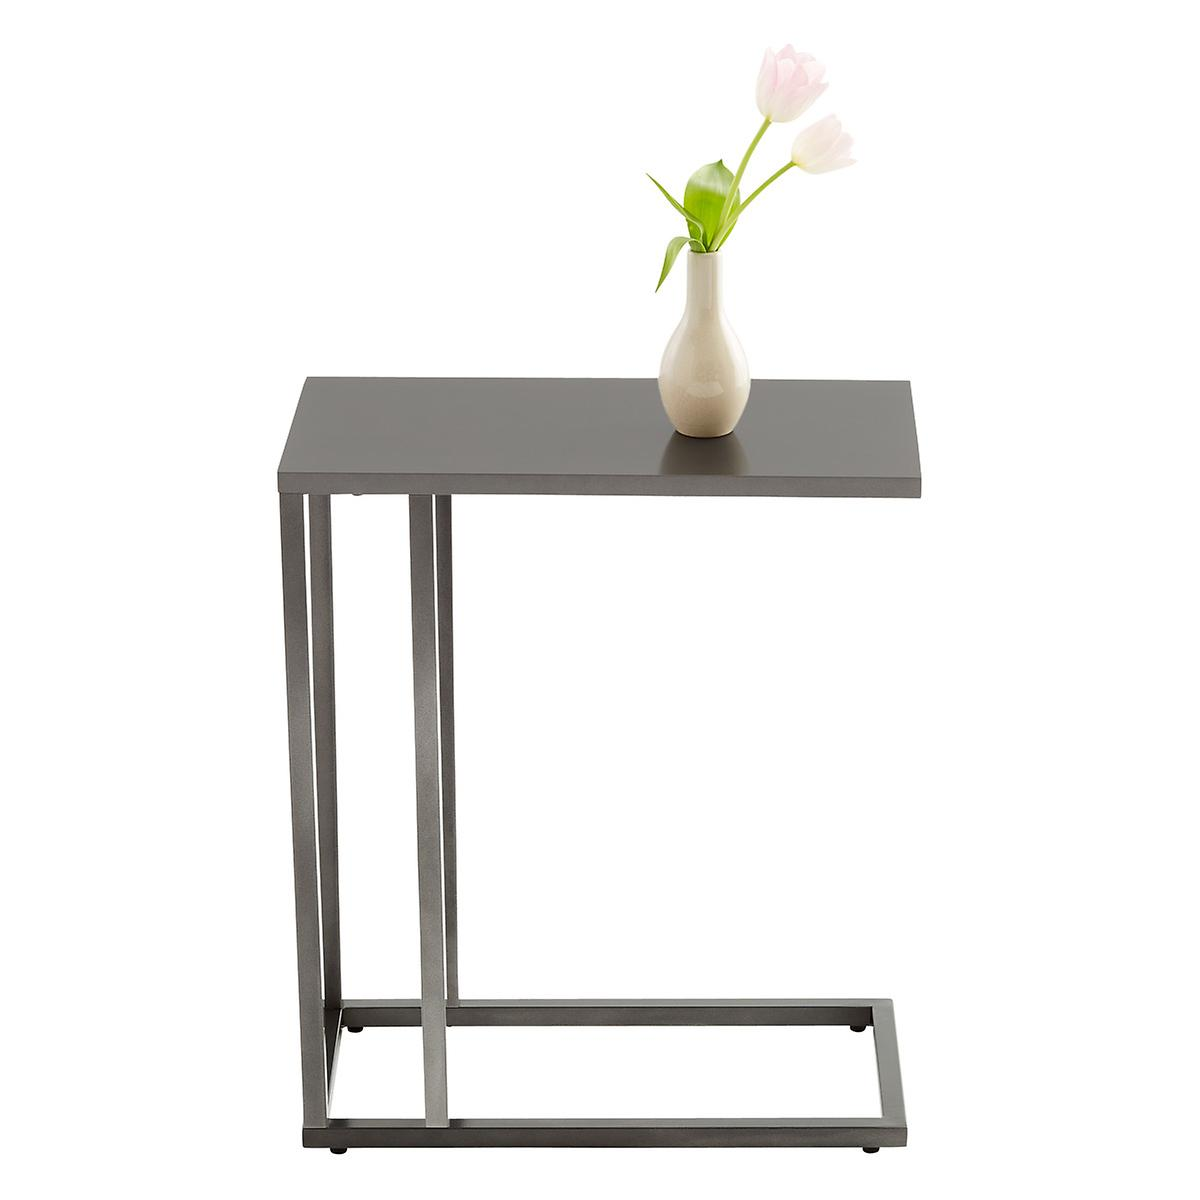 anthracite table the container ant alt shape acrylic accent corner storage shelf west elm knock off mini lamp house decorating ideas beachy chairs copper ashley signature sofa